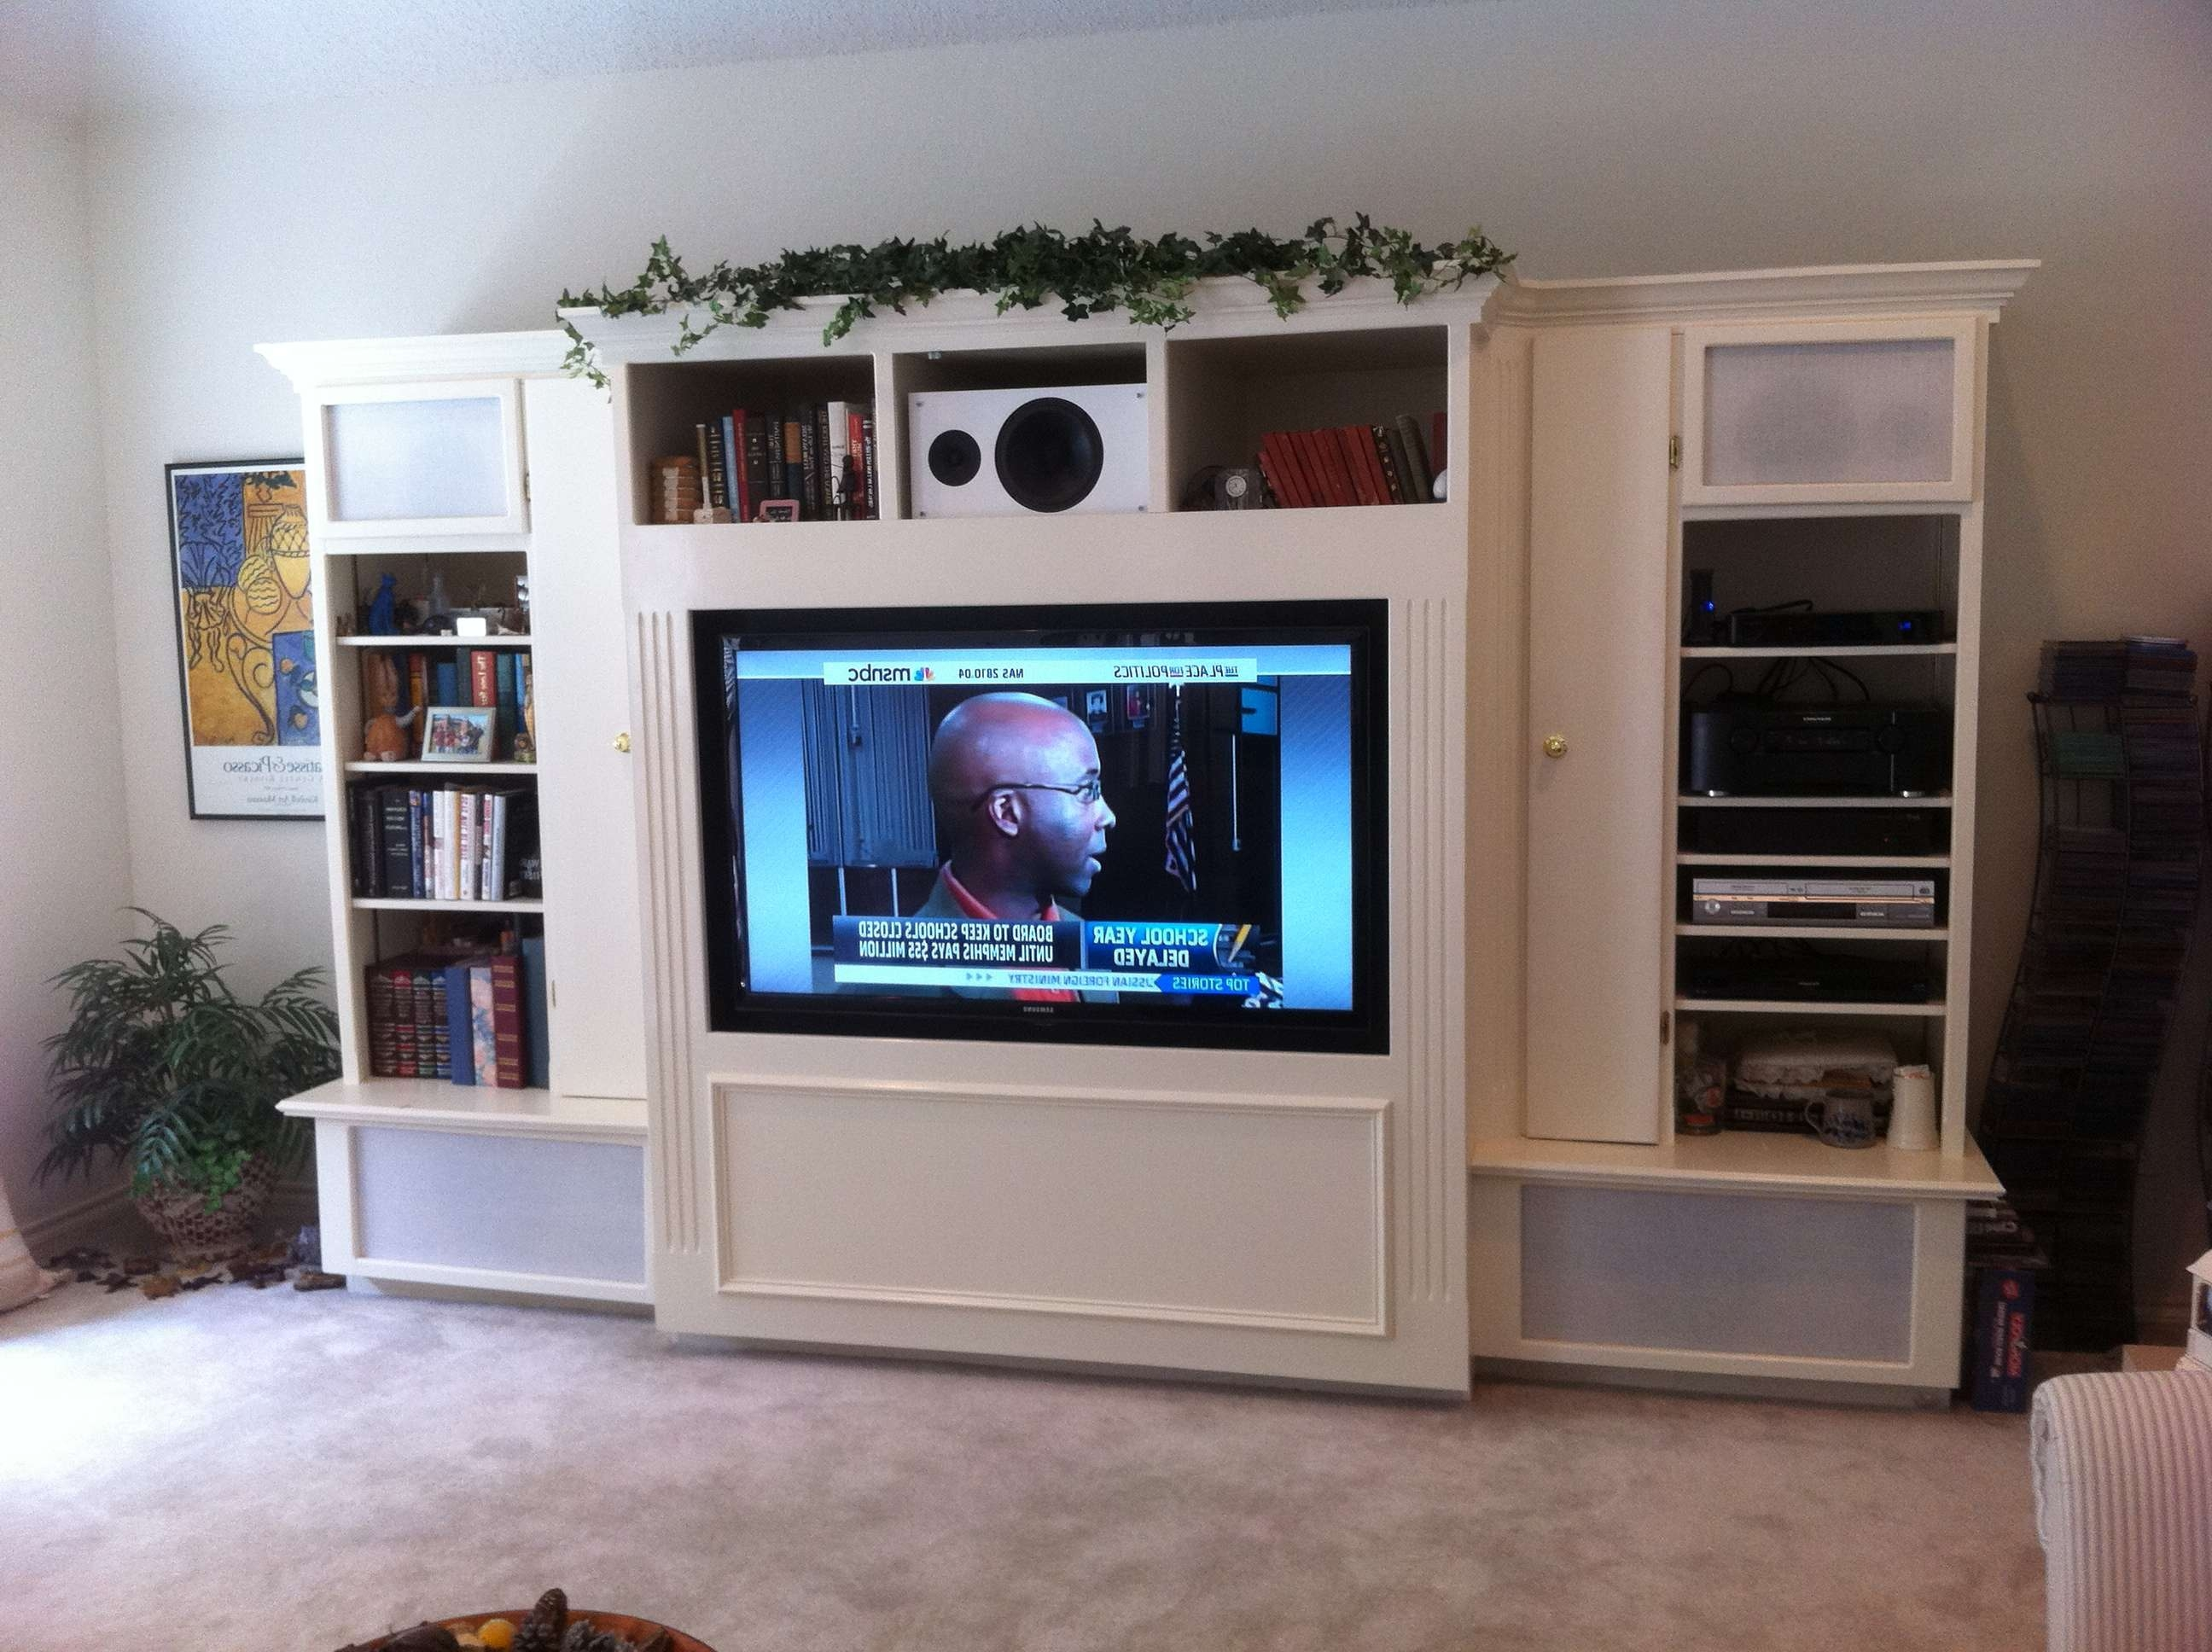 White Wooden Cabinet And Shelves Also Rectangle Black Flat Screen Pertaining To Wall Mounted Tv Cabinets For Flat Screens With Doors (View 9 of 20)